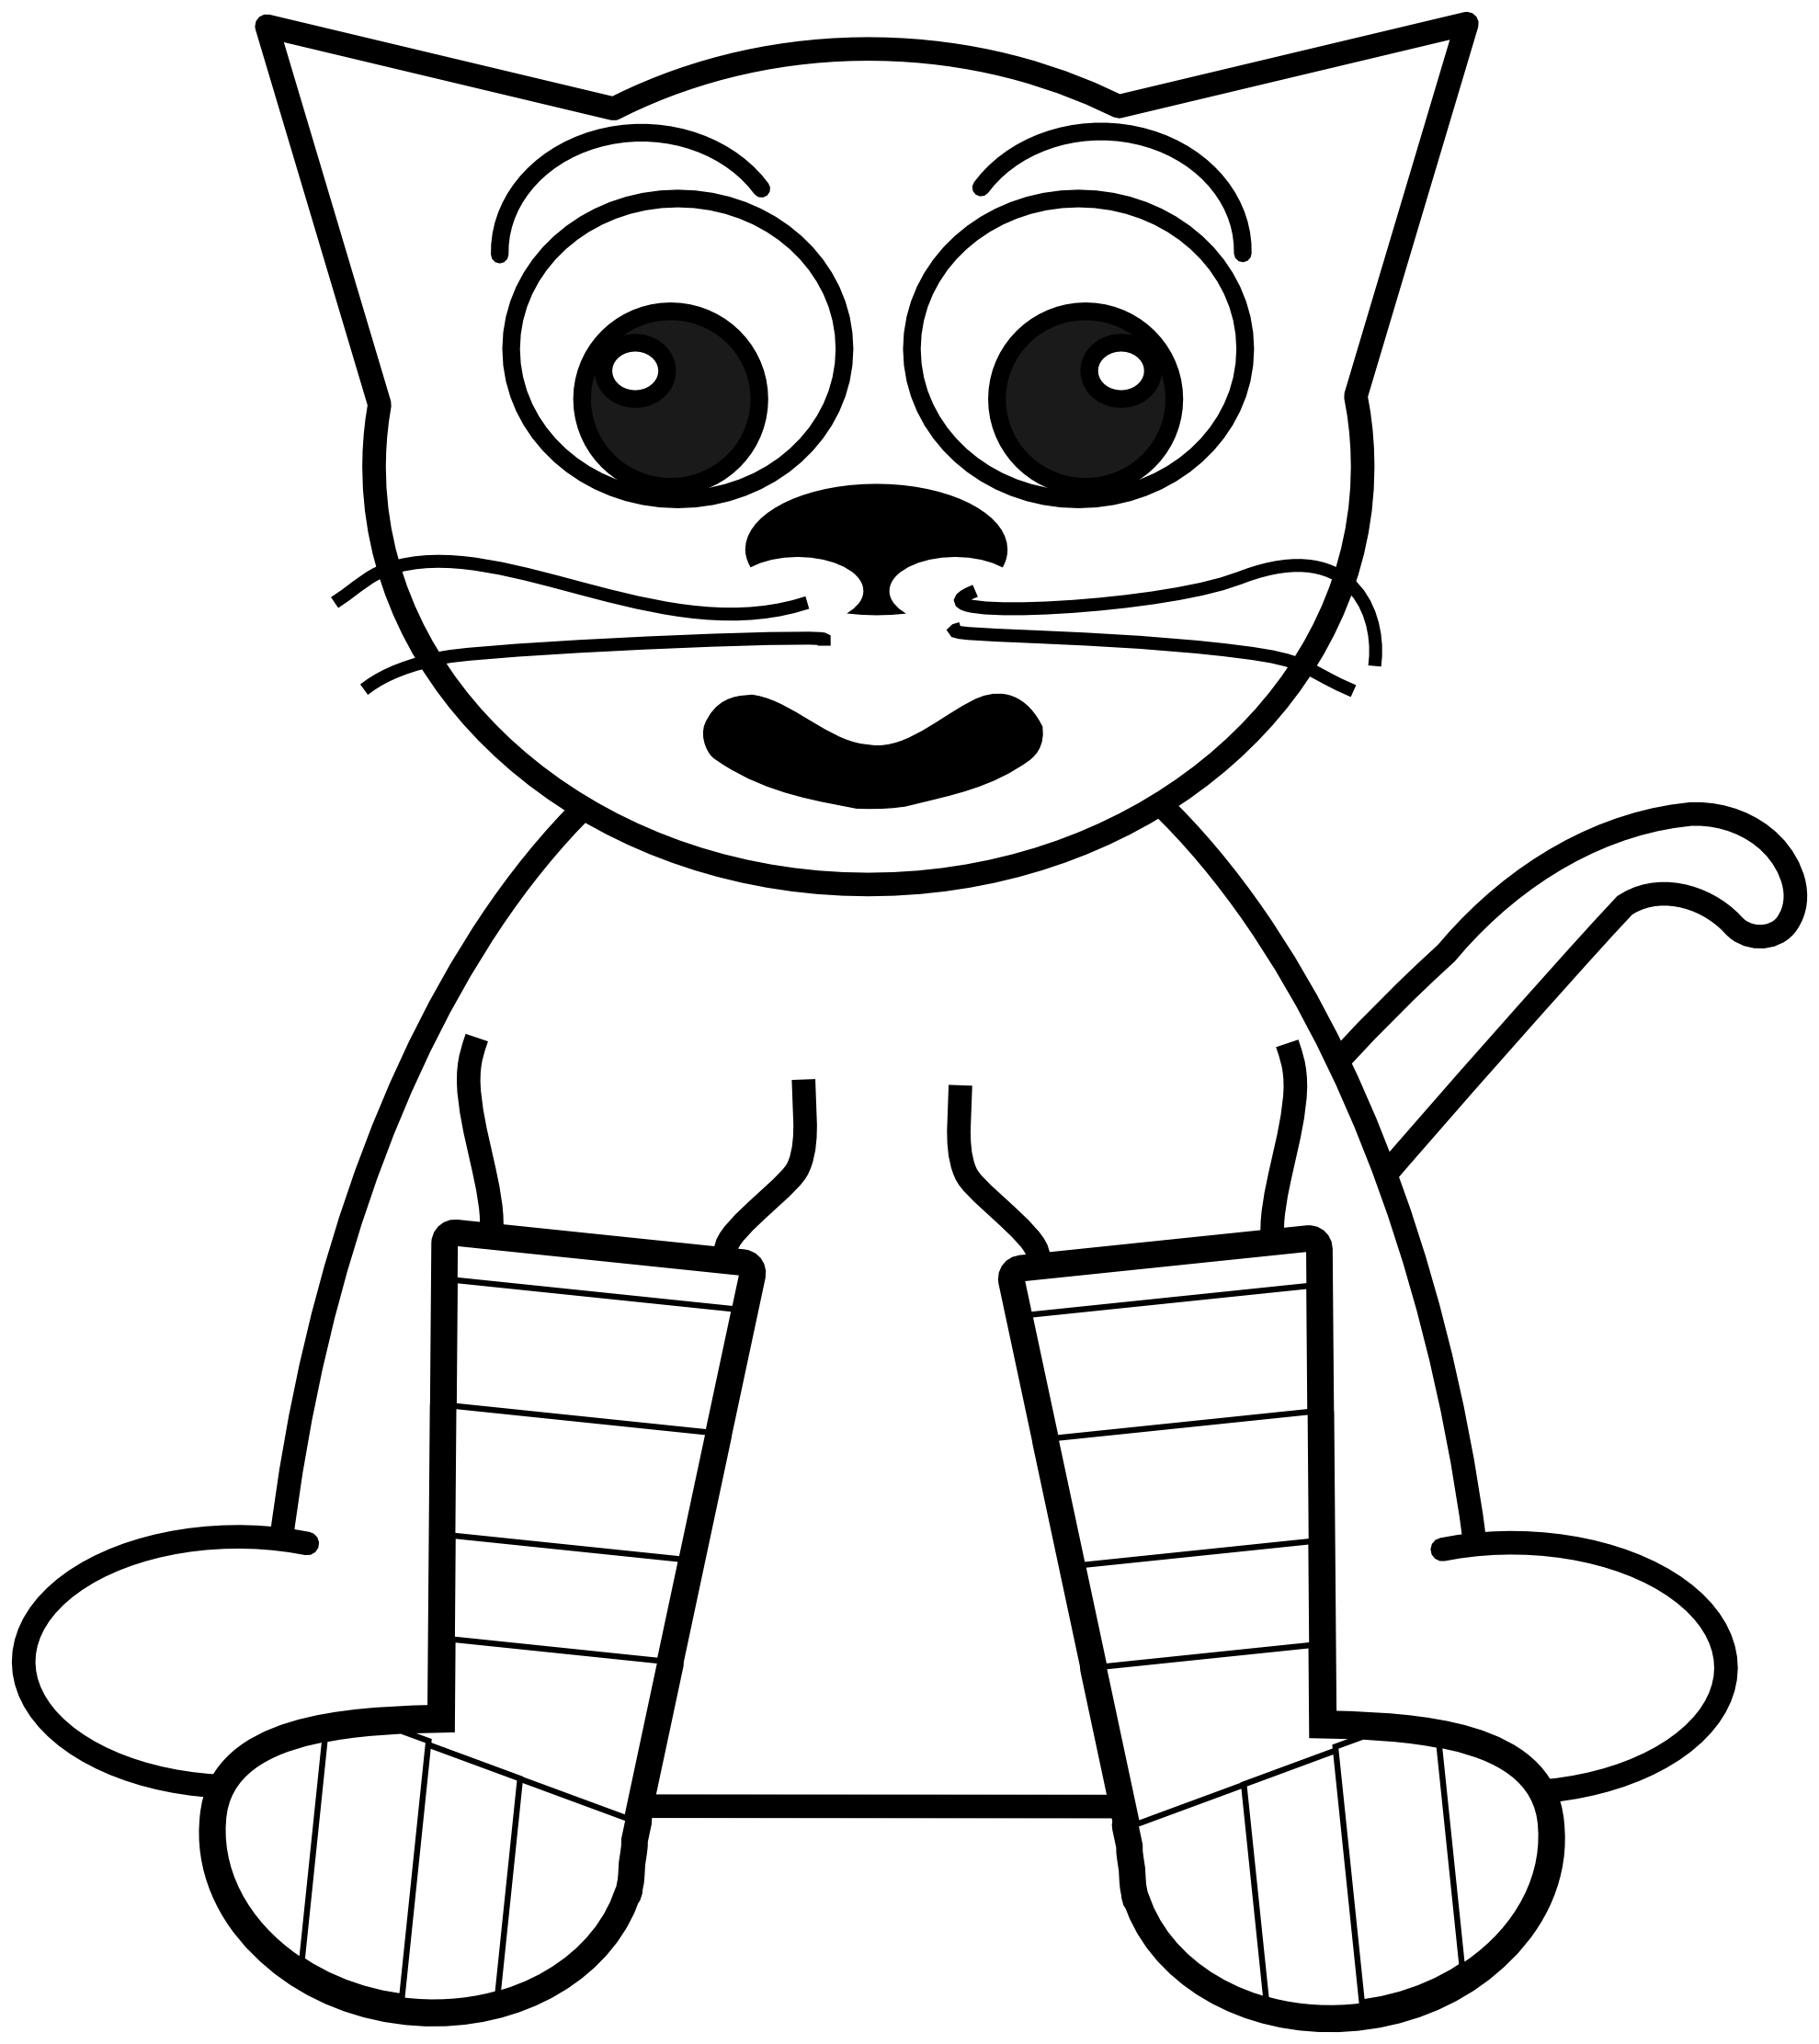 Rainbow clipart for kids black and white clipart panda for Black line coloring pages